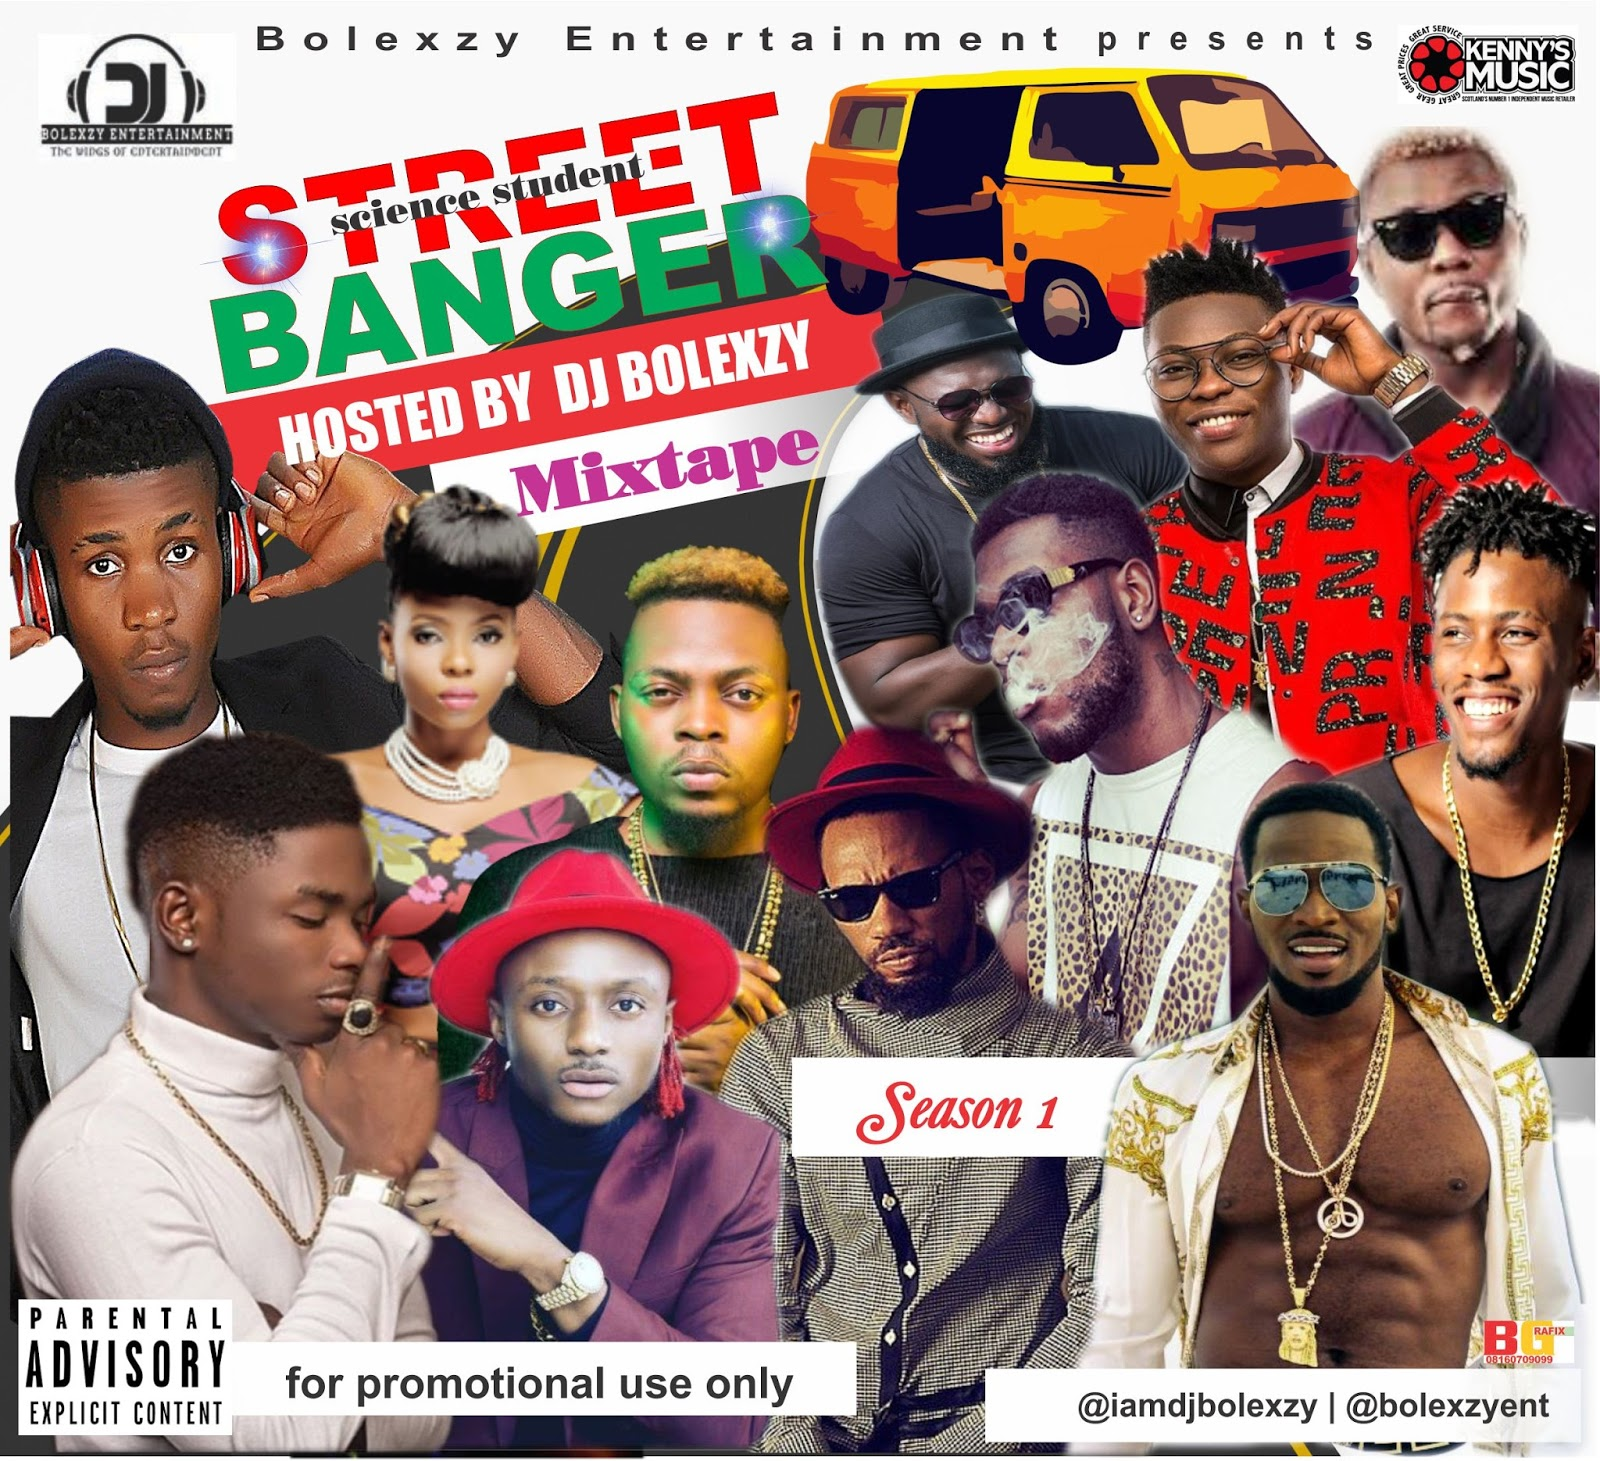 MIXTAPE || Street Banger (science student) Mix hosted by Dj